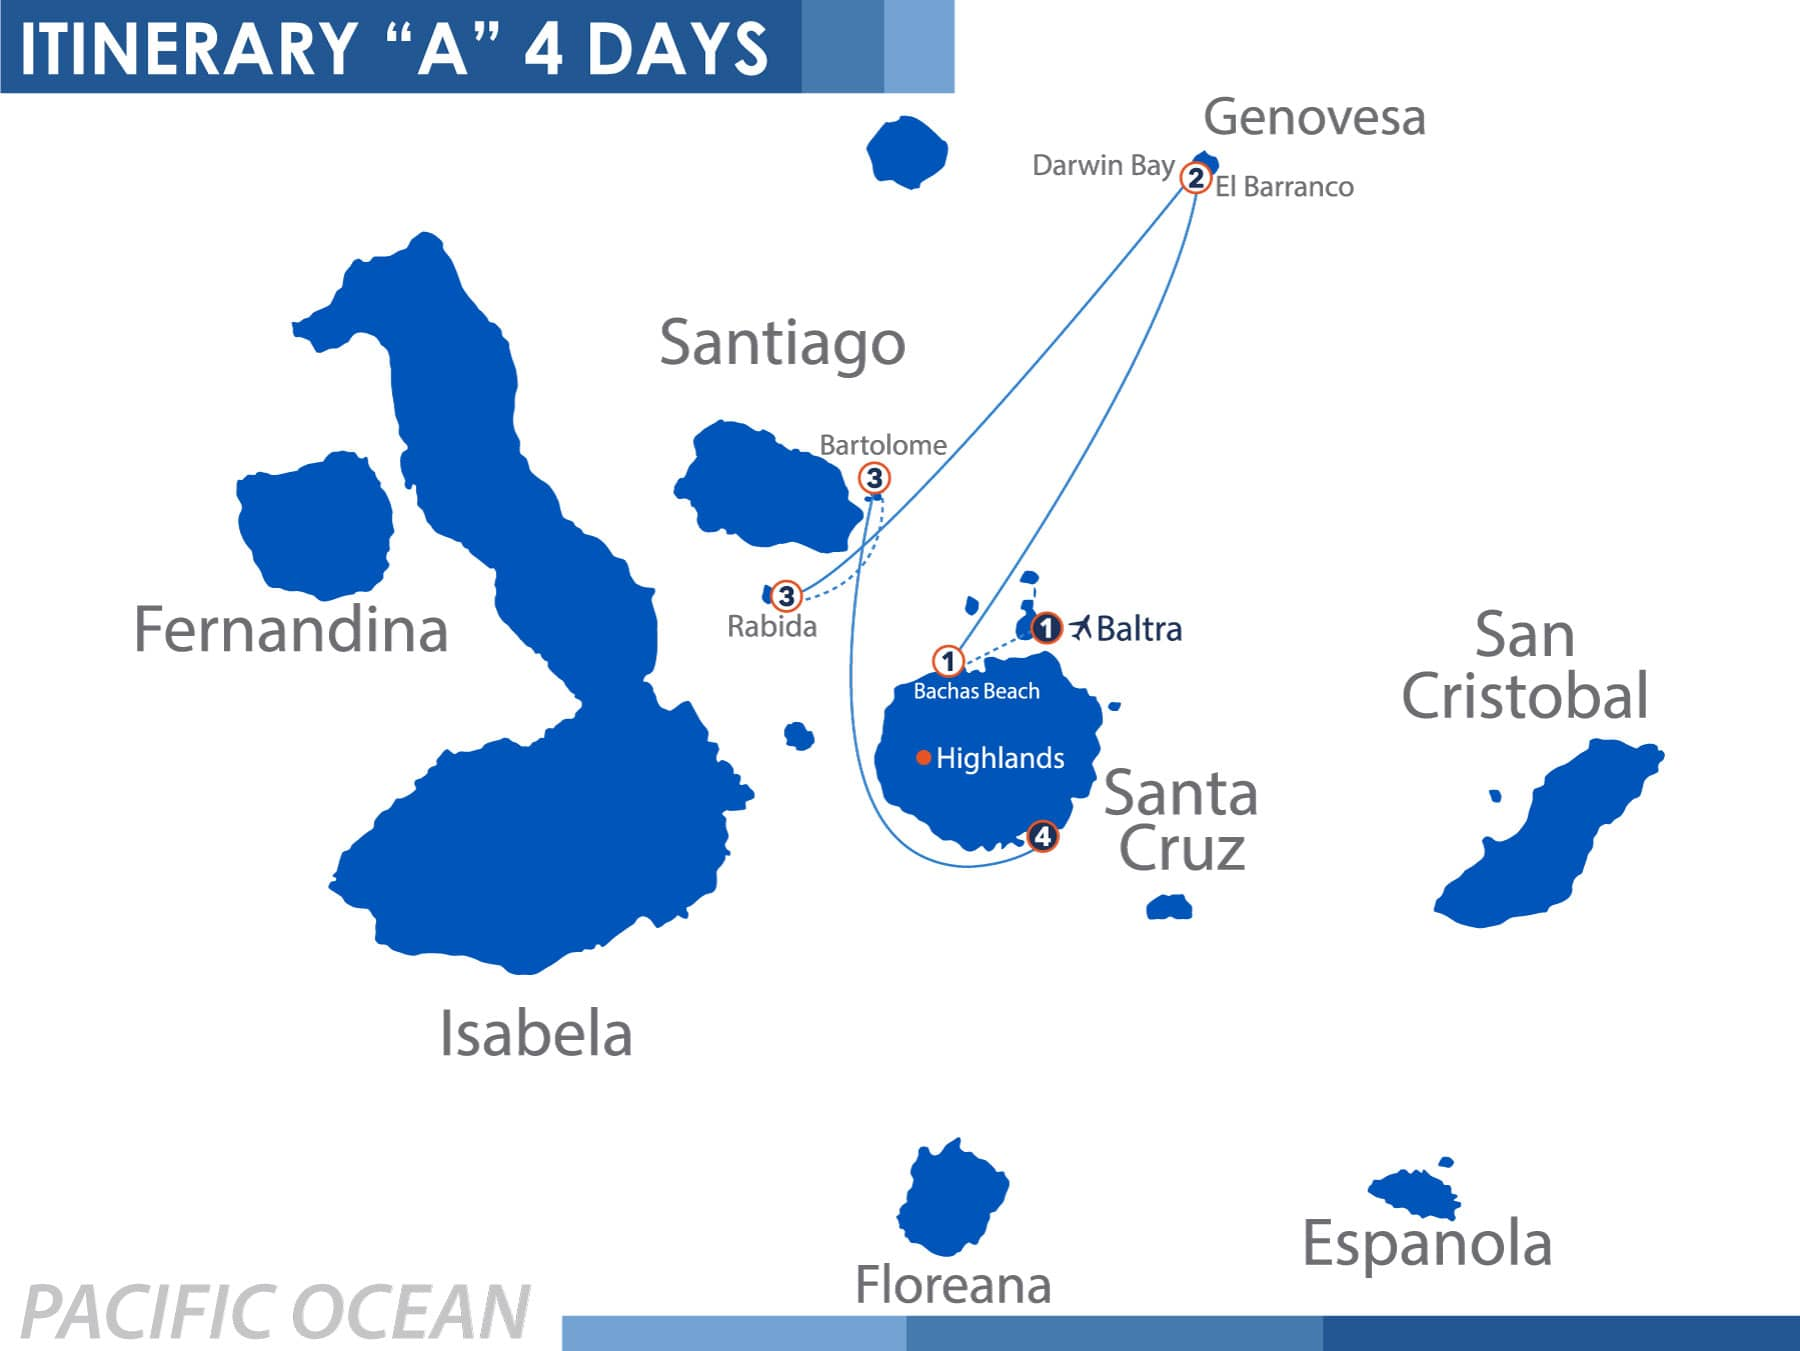 North Itinerary 'A4' 4 days Nemo 1